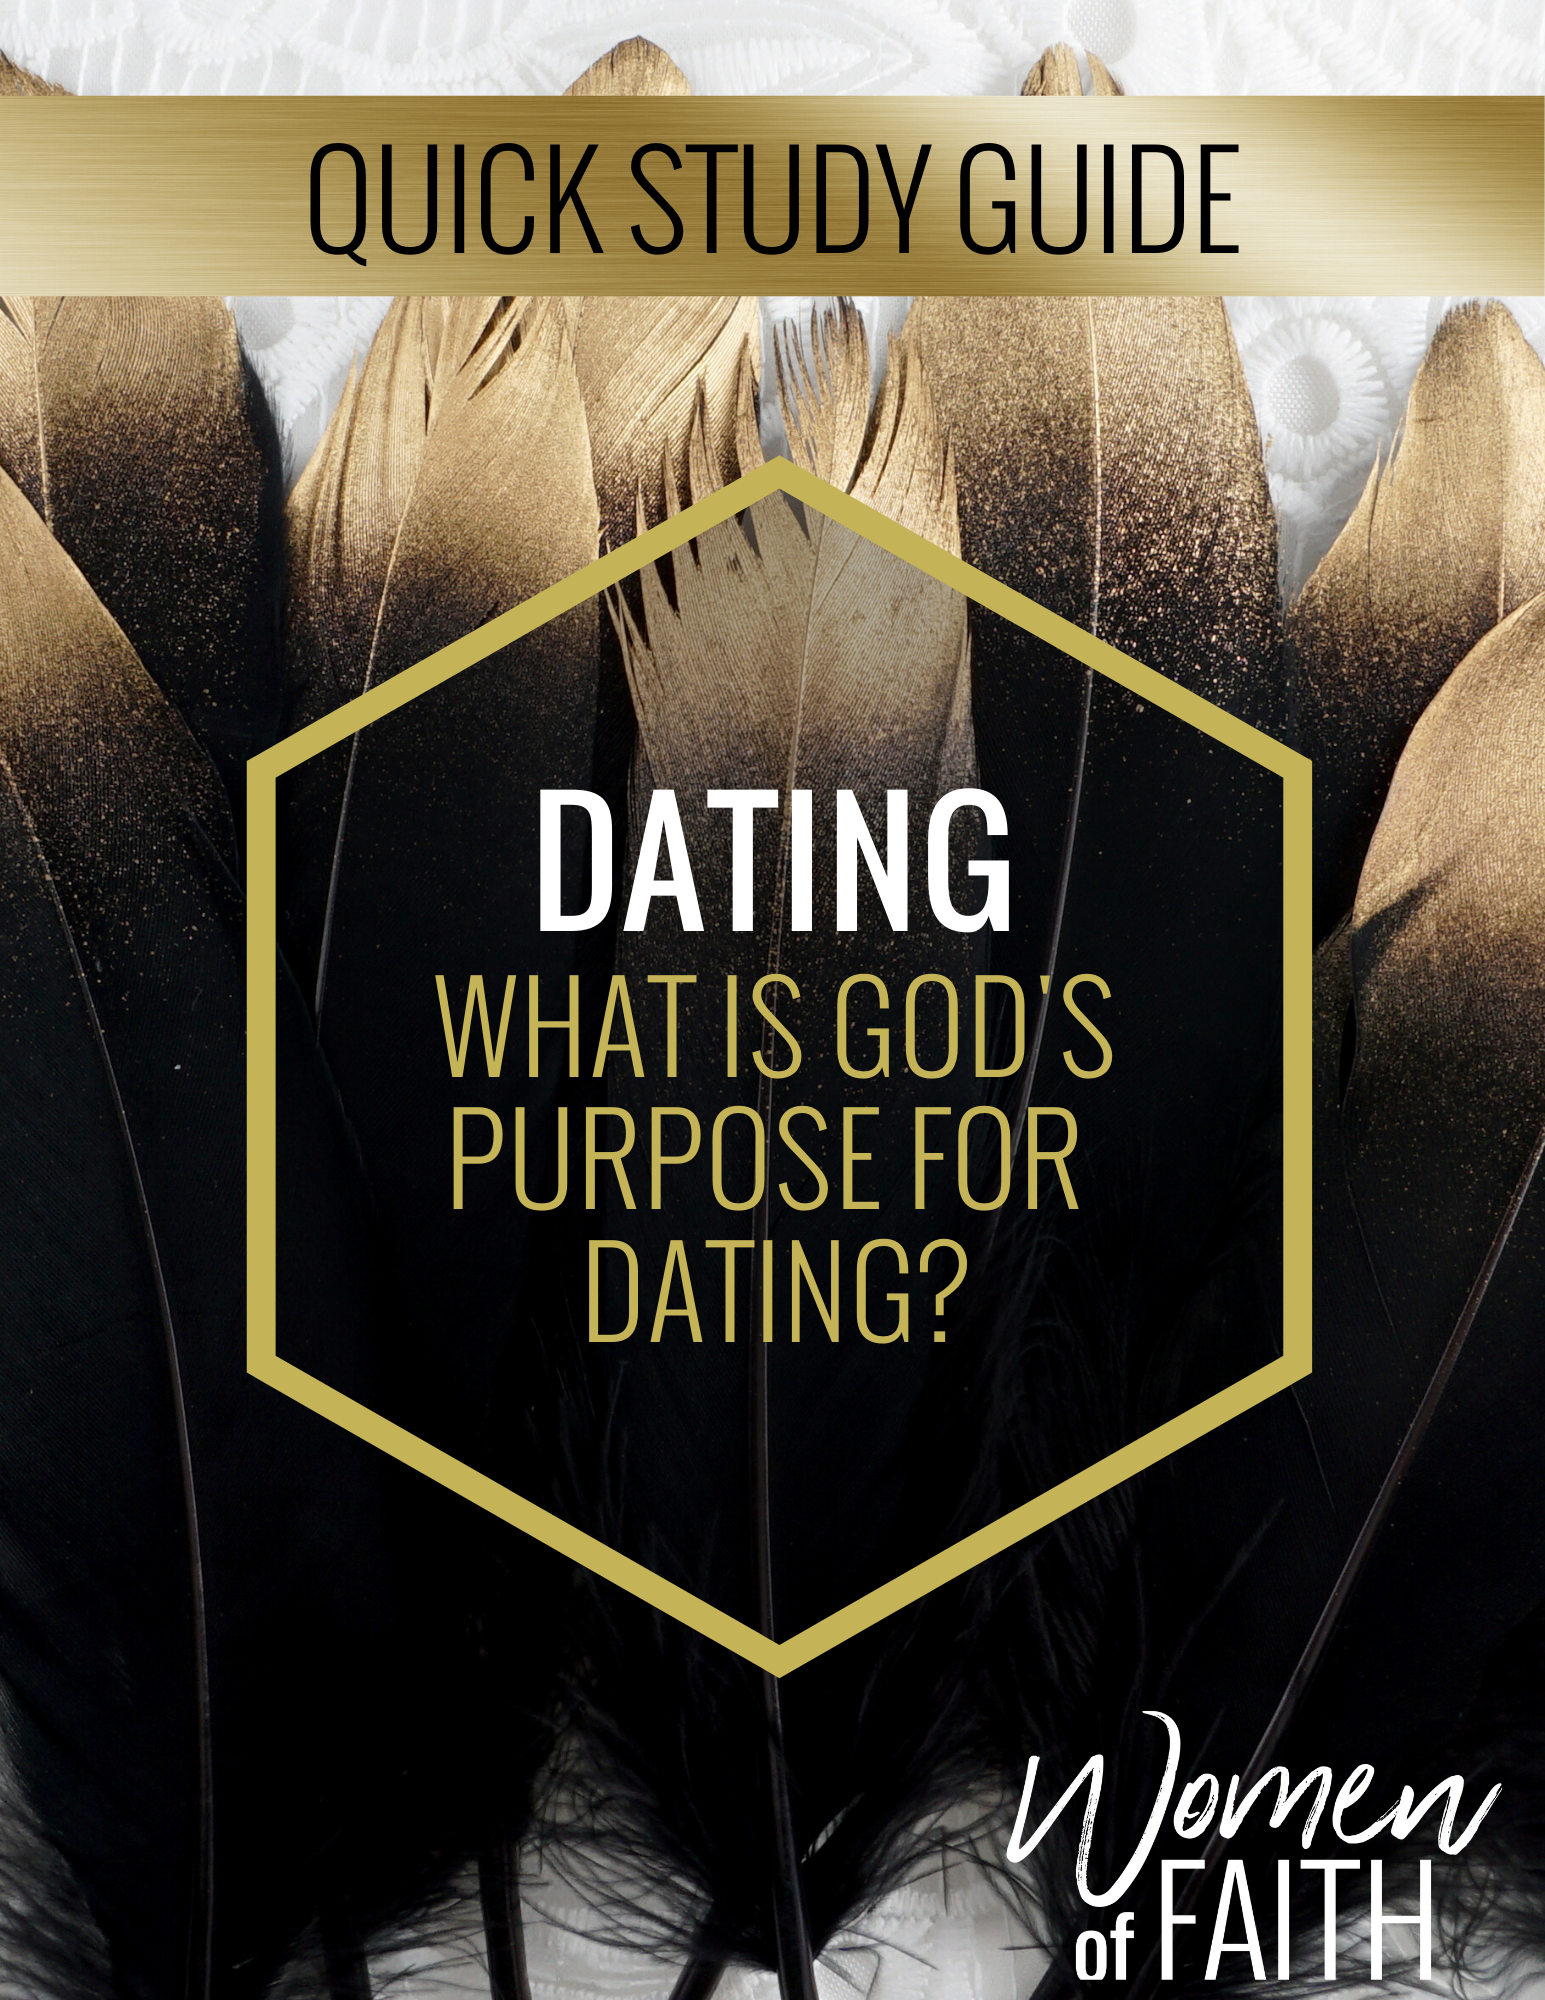 DATING - QUICK STUDY GUIDE